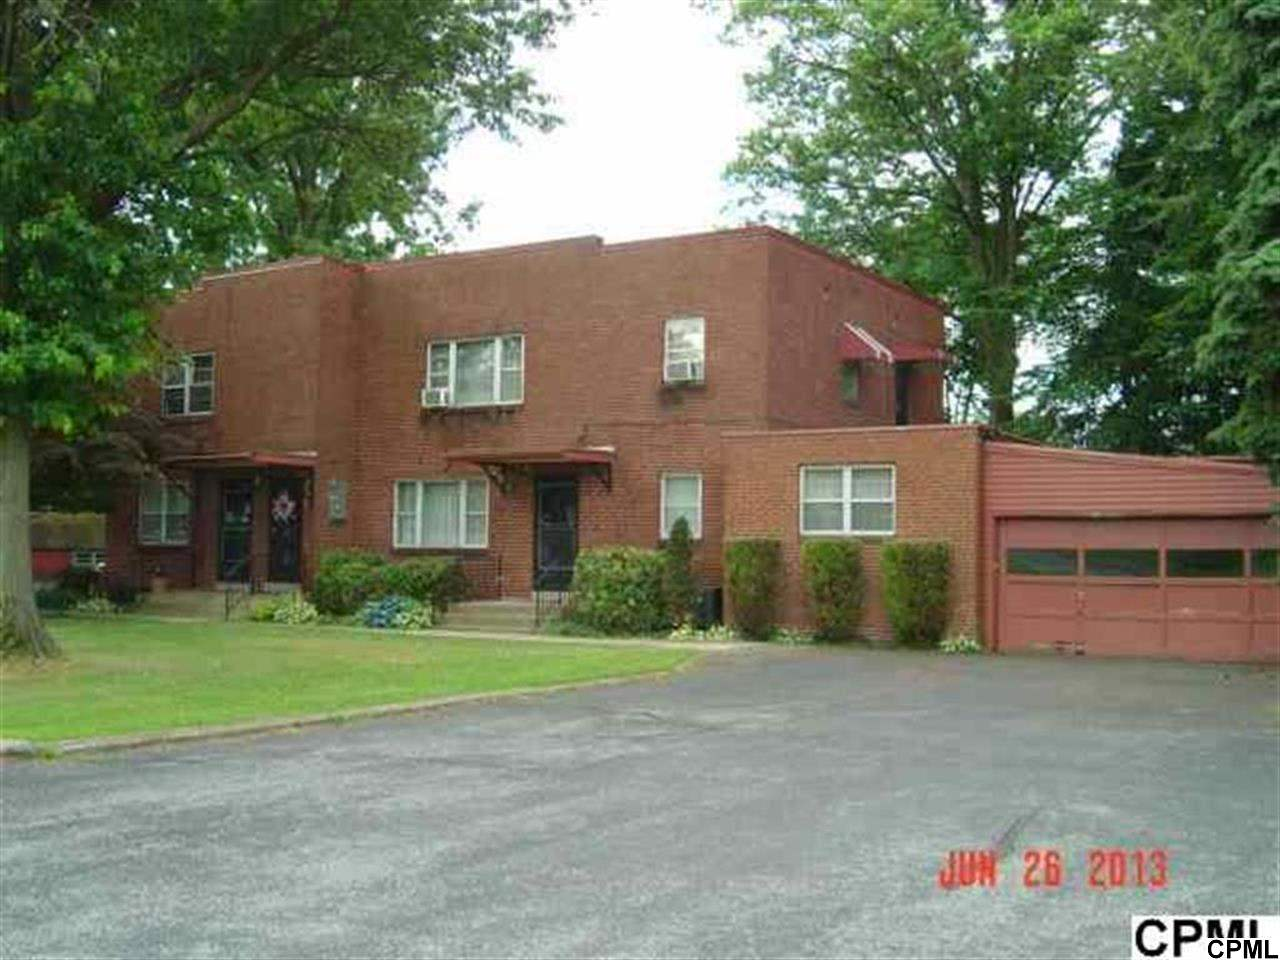 Rental Homes for Rent, ListingId:26797153, location: 25 Old Depot Road New Cumberland 17070